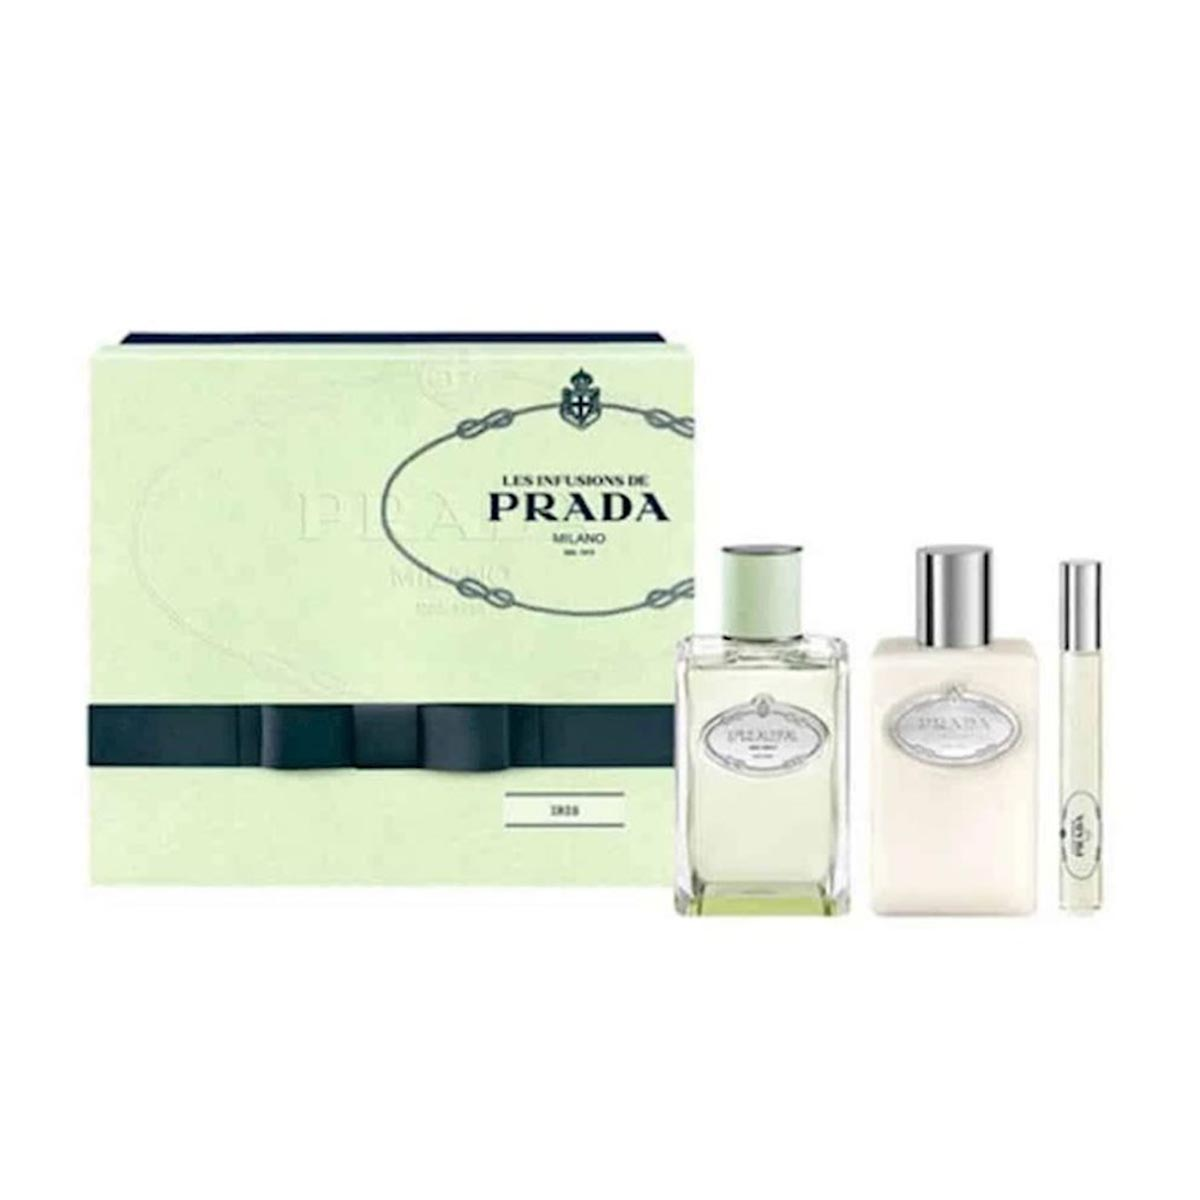 Prada infusion d iris eau de parfum 100ml locion corporal perfumada 100ml desodorante roll on 10ml